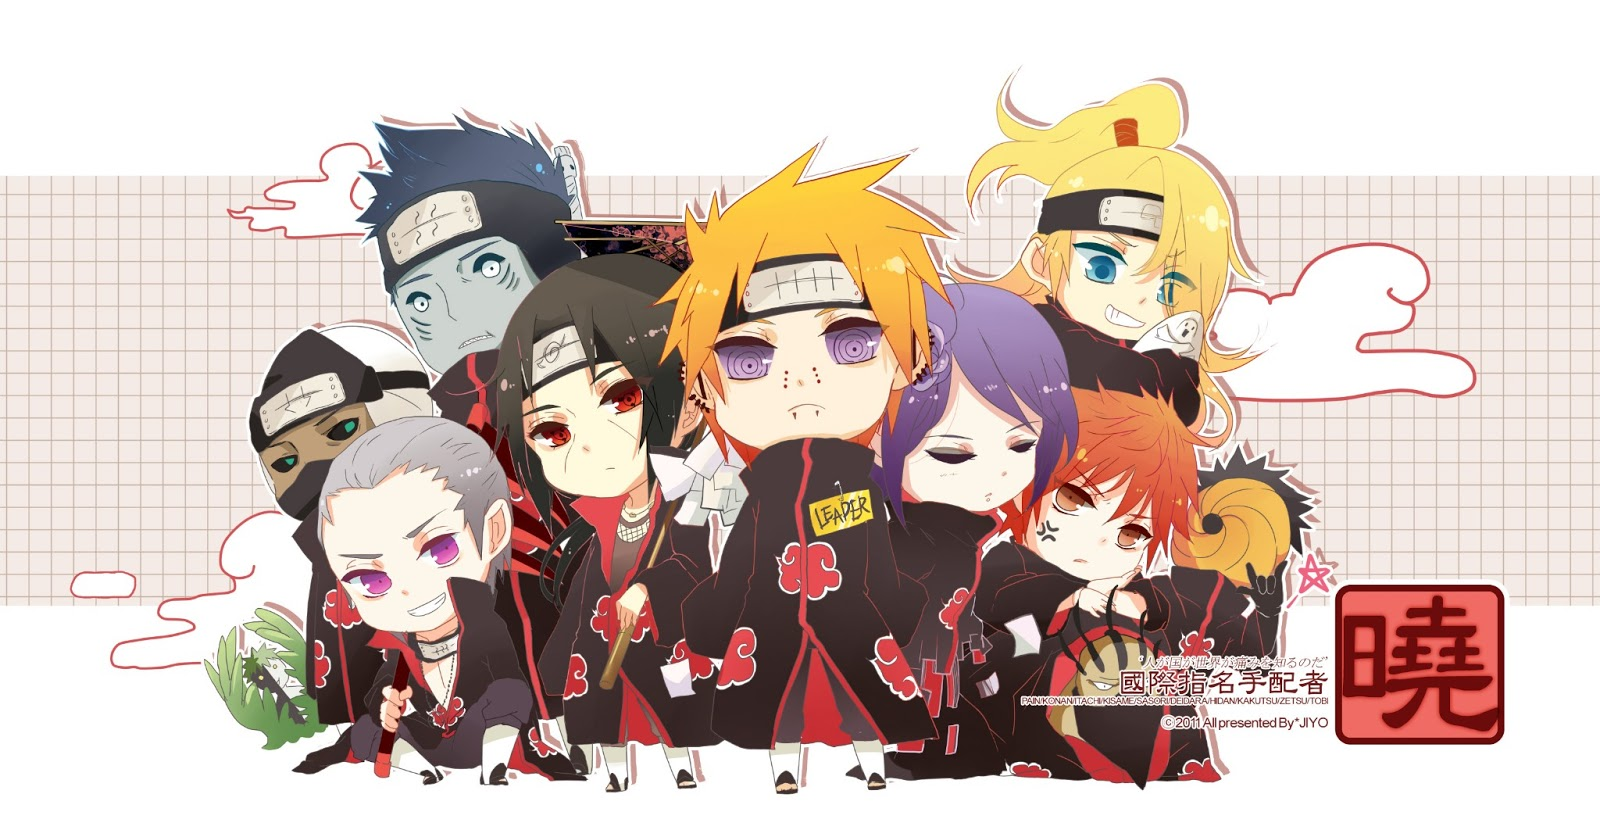 Akatsuki Member Chibi | Your daily Anime Wallpaper and Fan Art